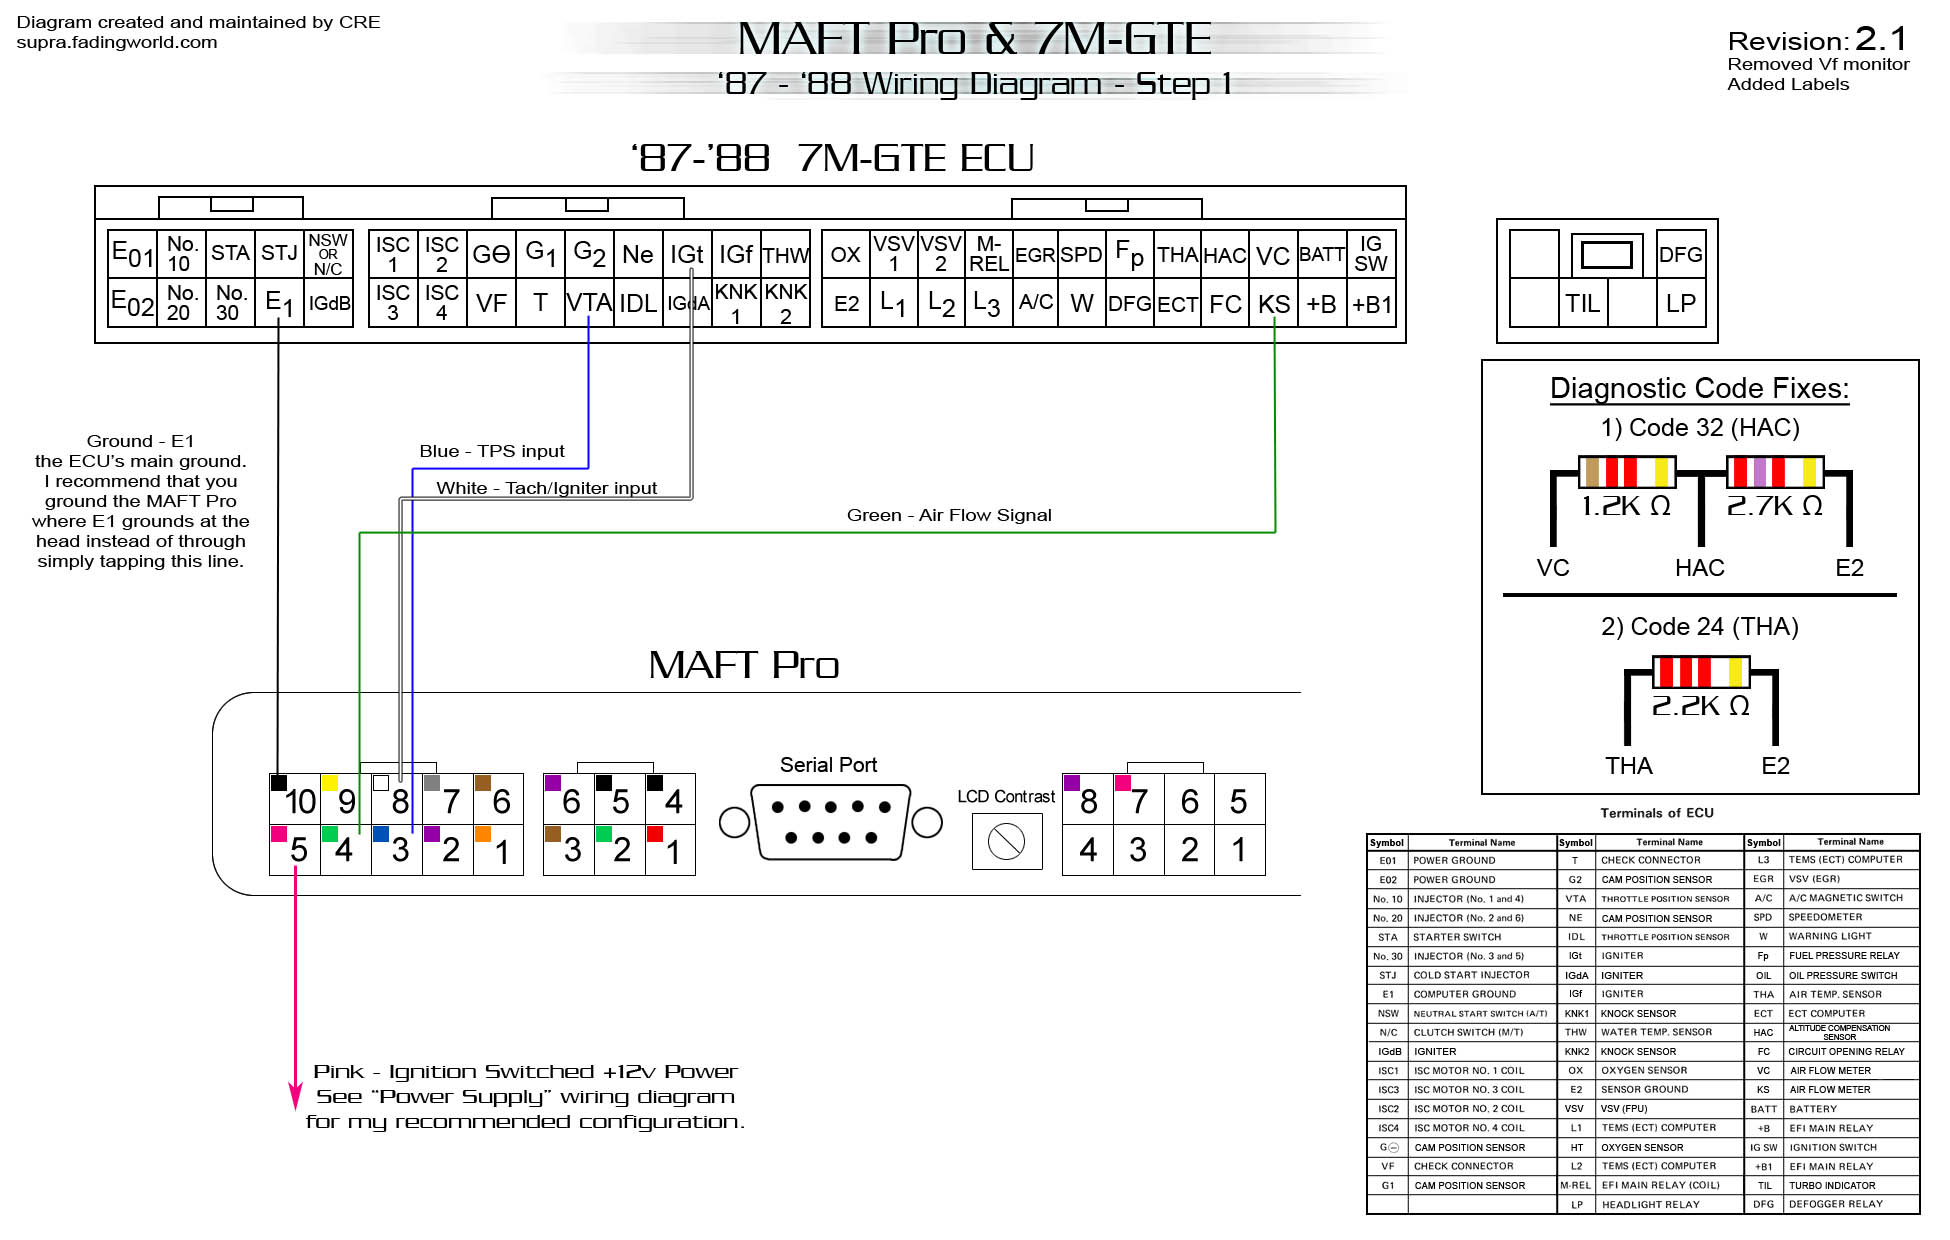 87 88 Wiring Diagram Rev. 2.1 (CRE) trouble wiring maft pro in 87 mk3 full throttle speed tech support mk3 supra wiring diagram at suagrazia.org